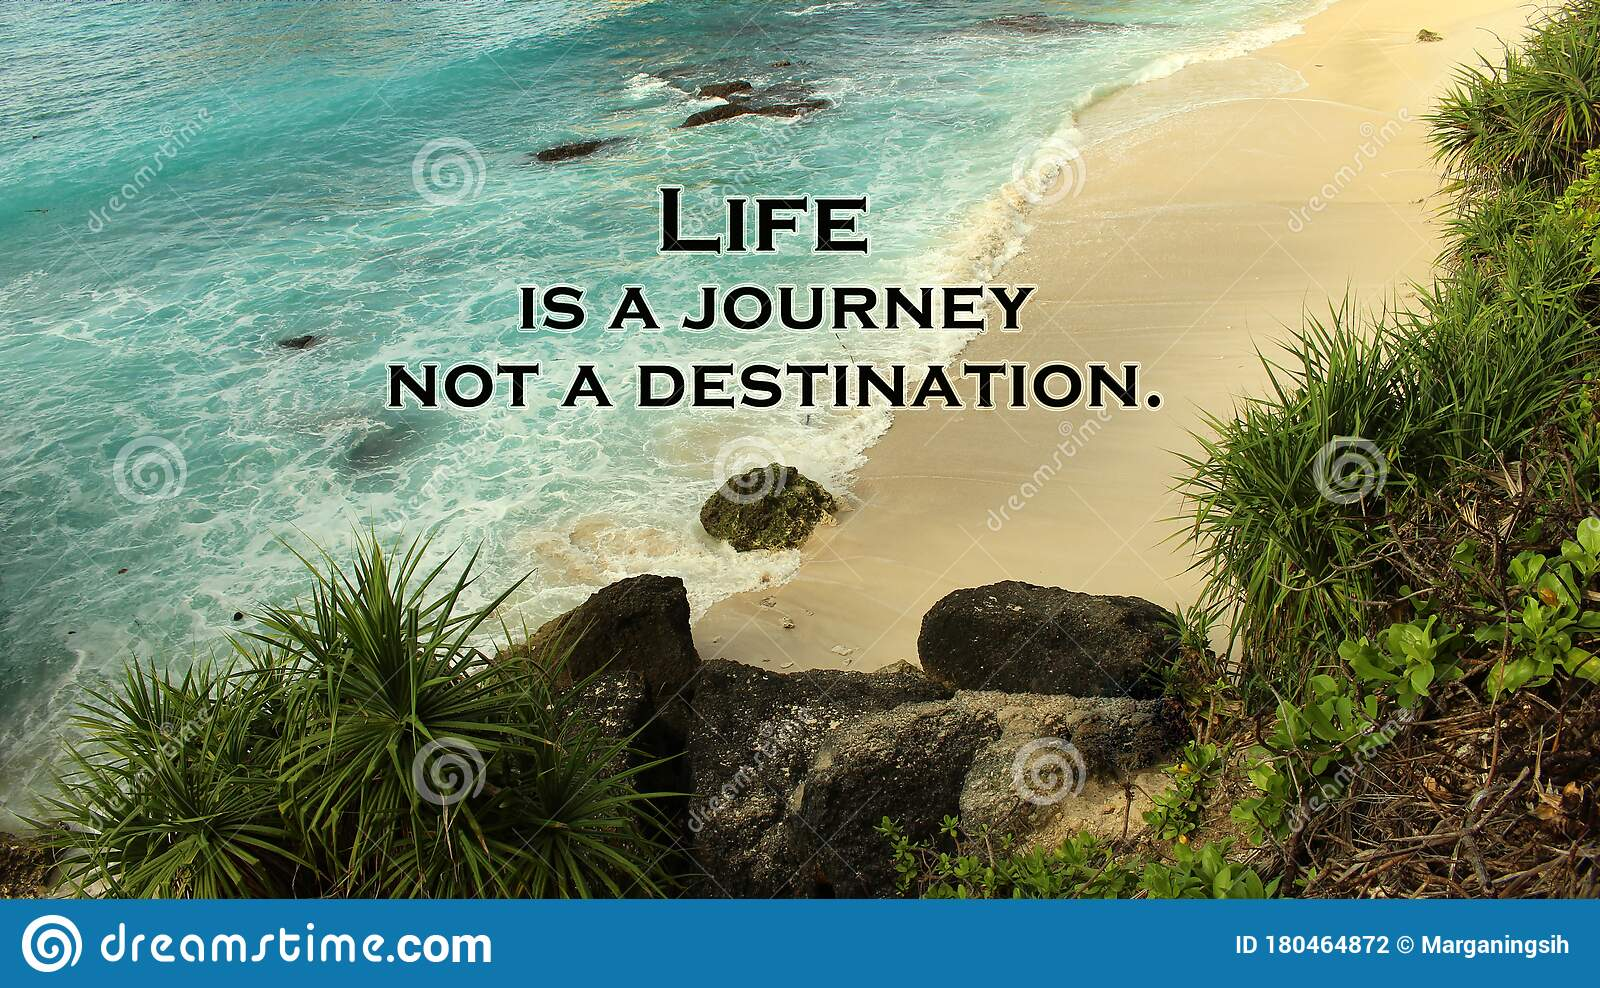 17 Life Journey Not Destination Quote Photos Free Royalty Free Stock Photos From Dreamstime